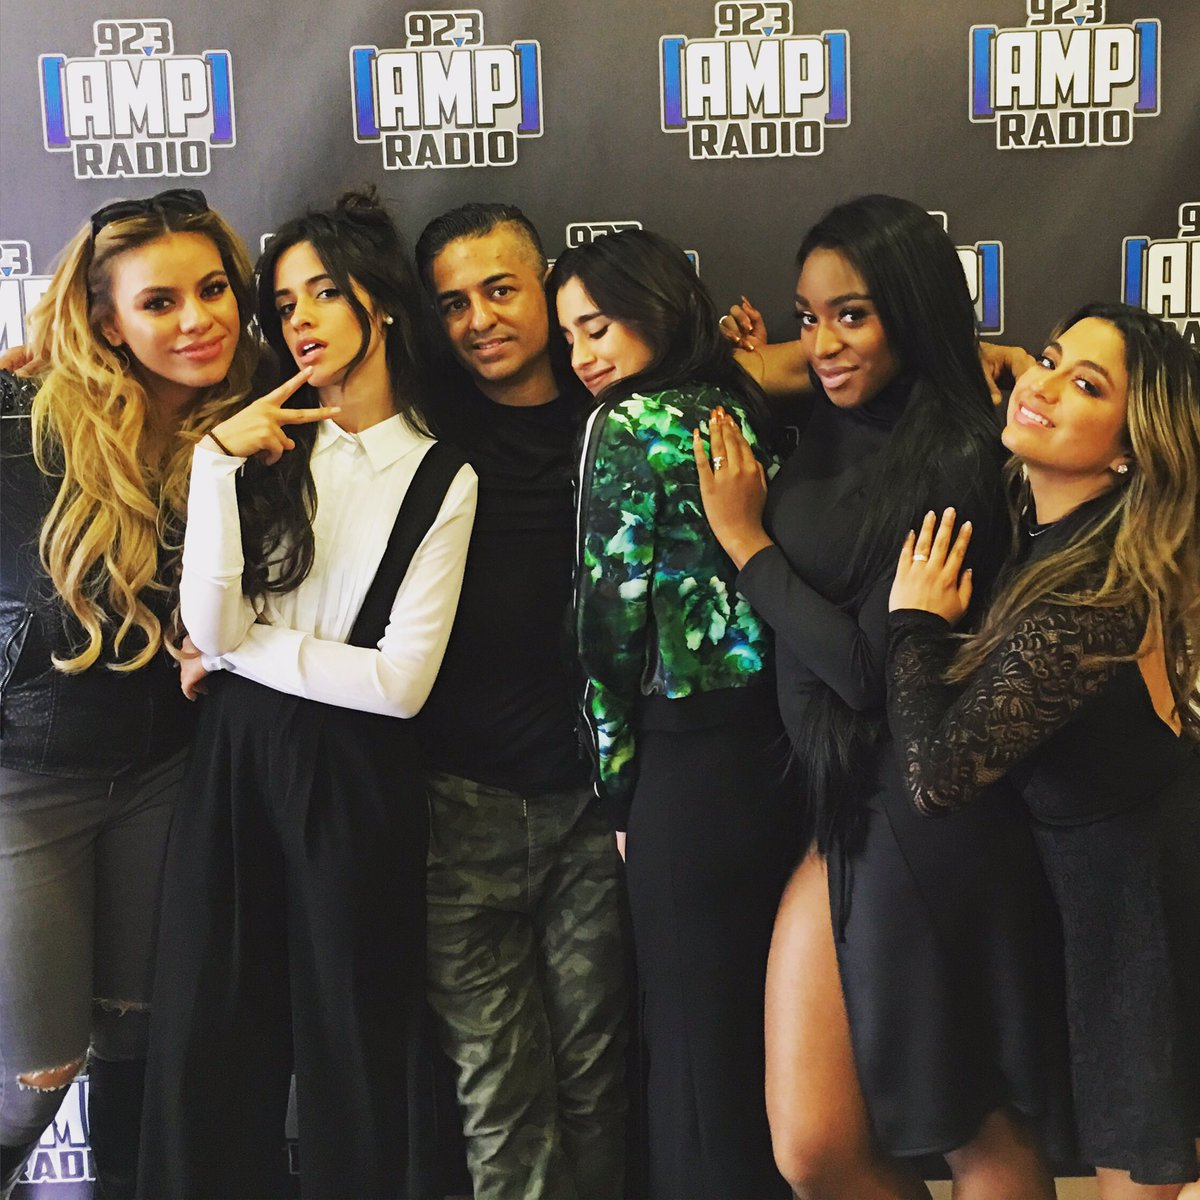 Hanging out with my girls @fifthharmony